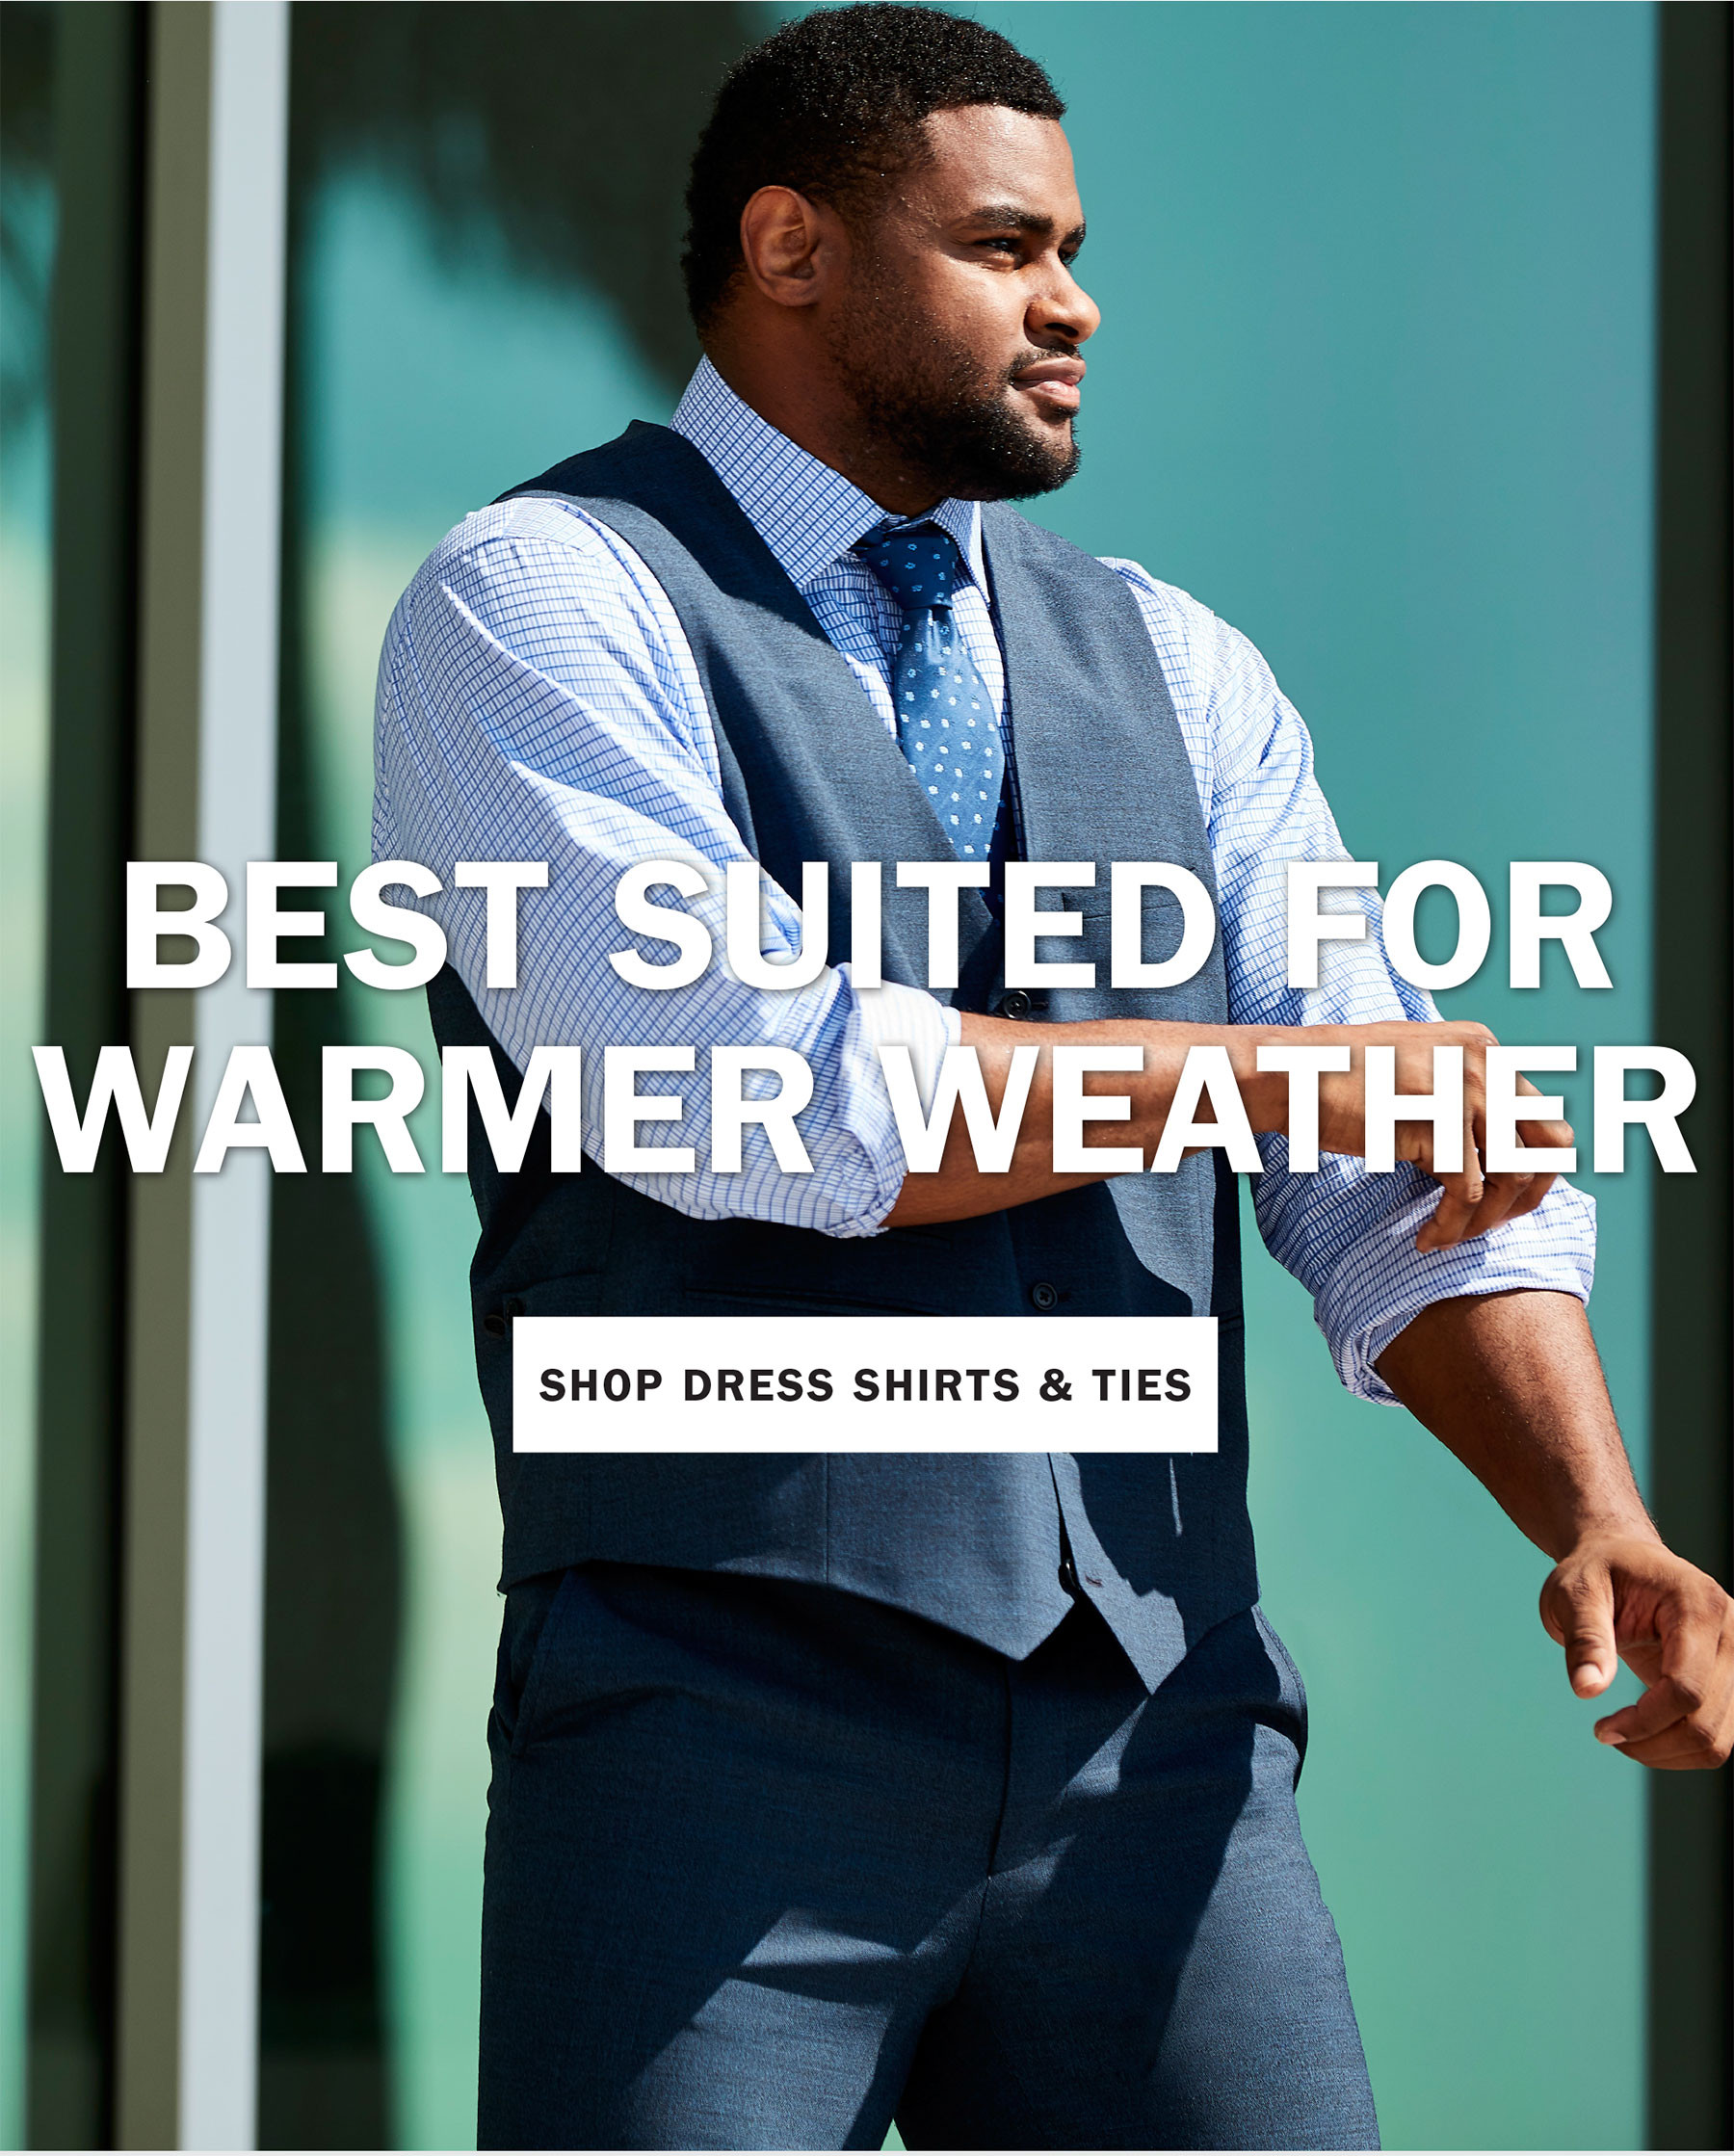 BEST SUITED FOR WARMER WEATHER | SHOP DRESS SHIRTS AND TIES